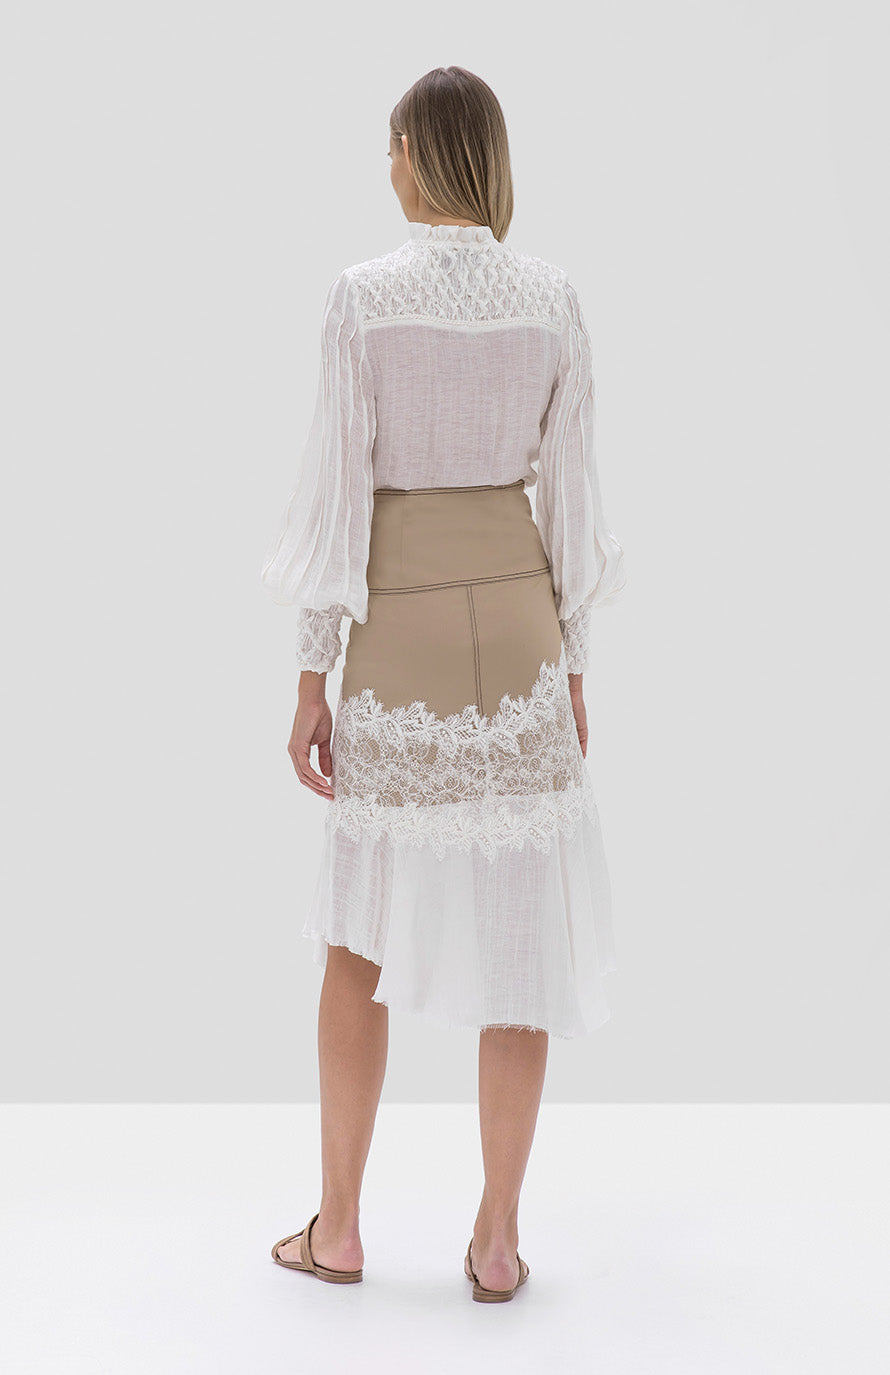 Alexis Minelli Top and Beretti Skirt - Rear View